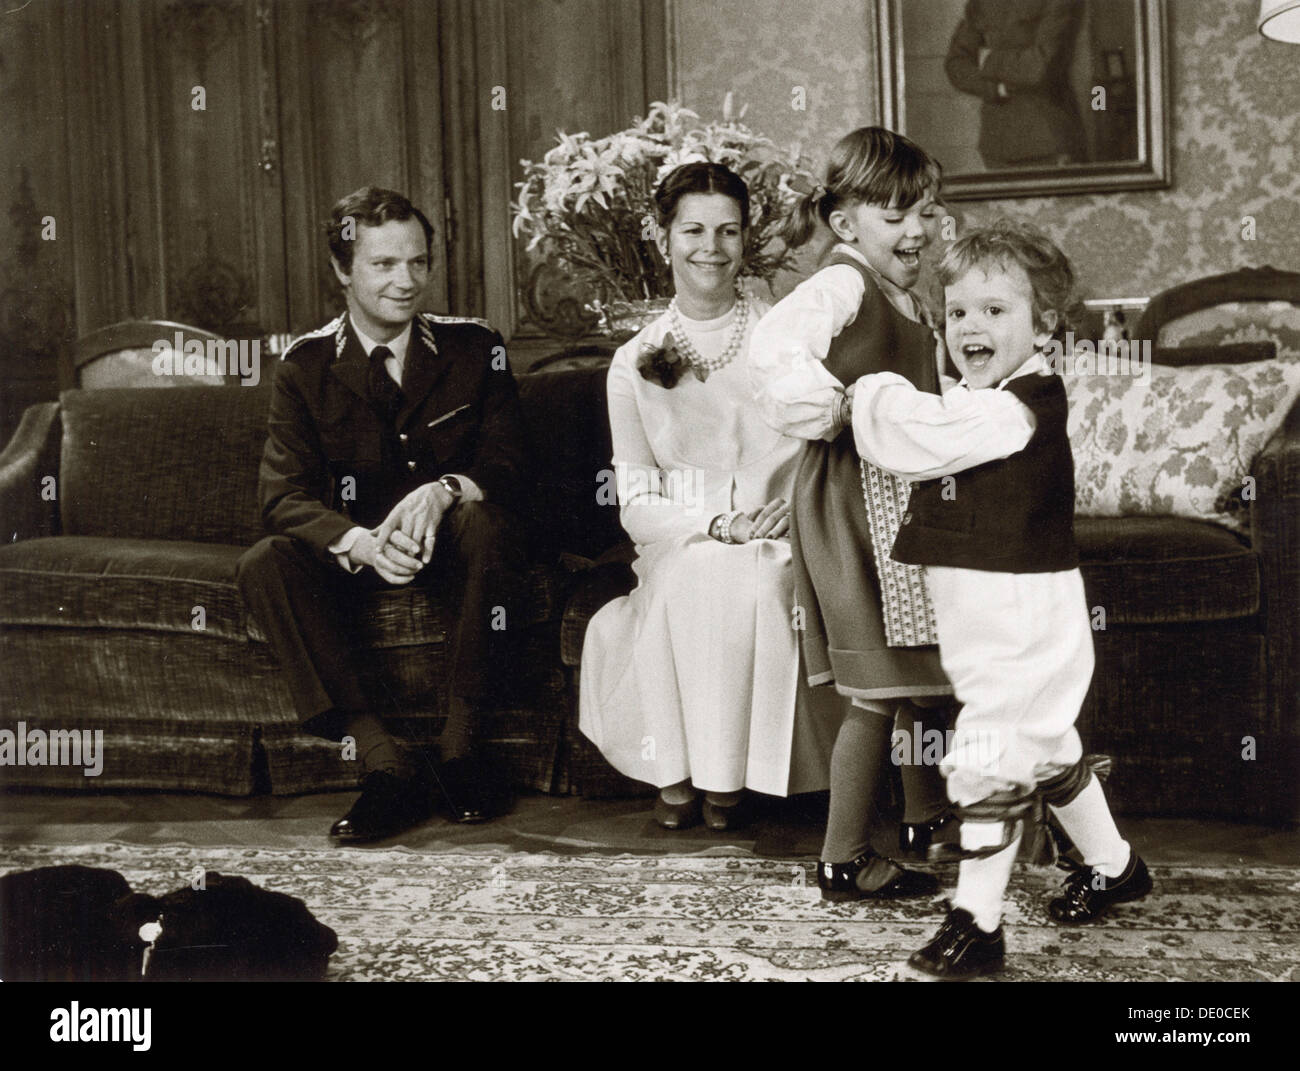 The Swedish Royal Family at their official Christmas photo shoot, 1981. King Carl XVI Gustaf (1946-), Queen Silvia (1943-) and their two eldest children, Crown Princess Victoria (1977-) and Prince Carl Philip (1979-). - Stock Image